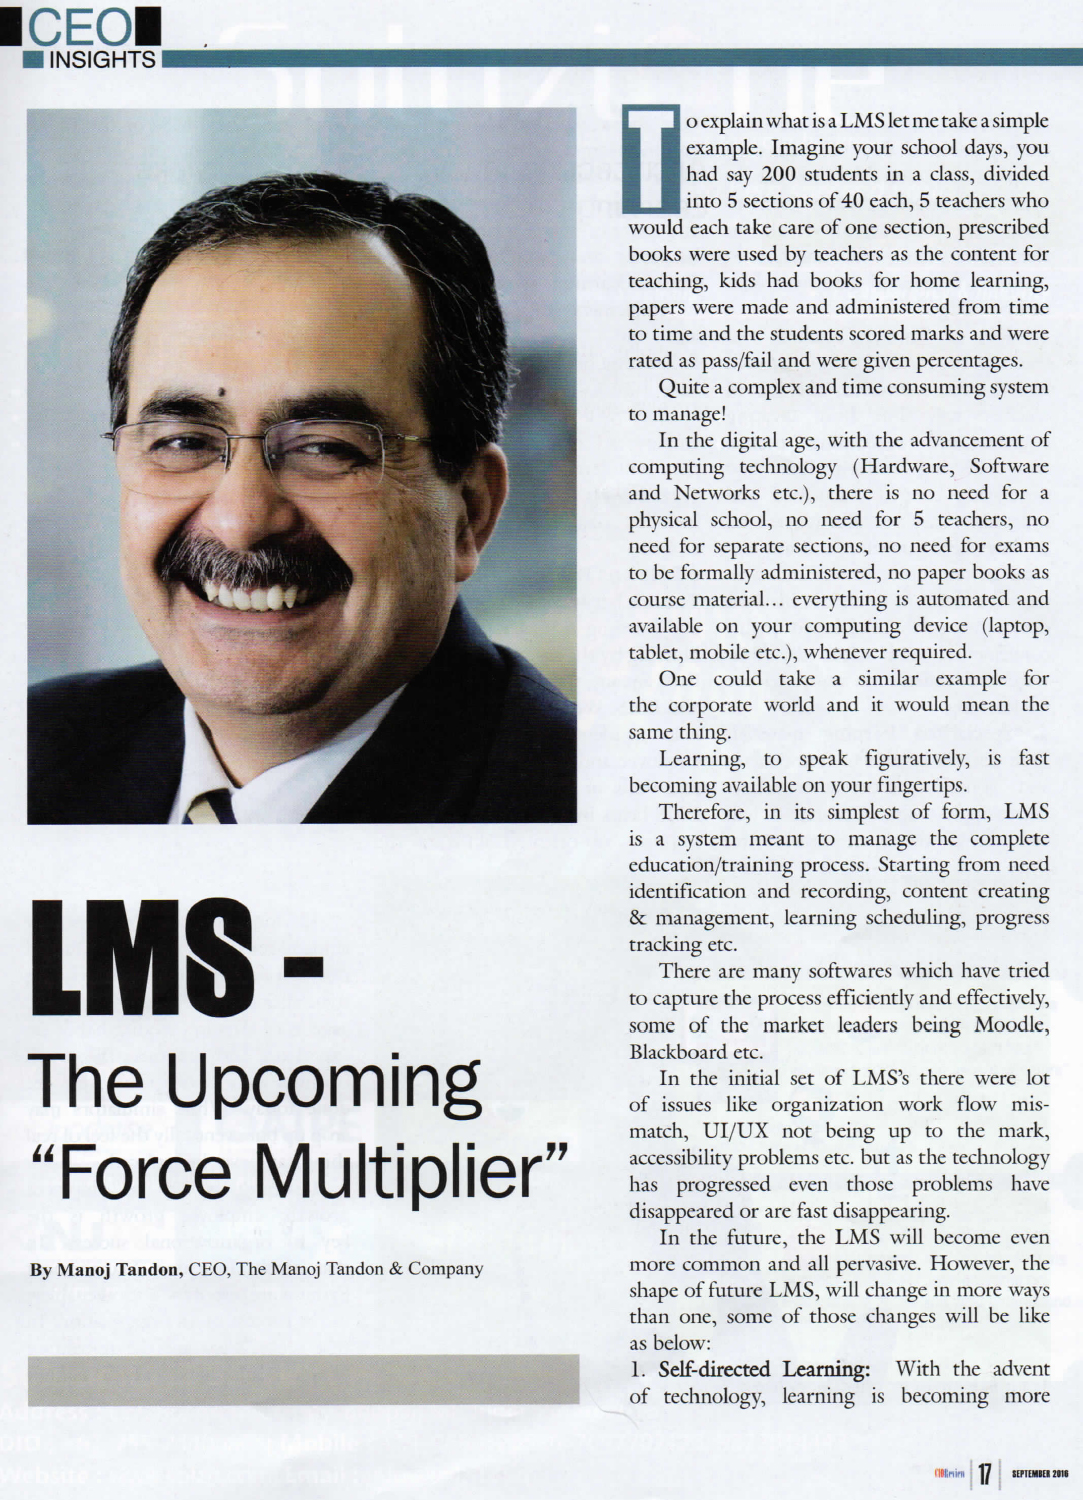 LMS The Upcoming Force Multiplier